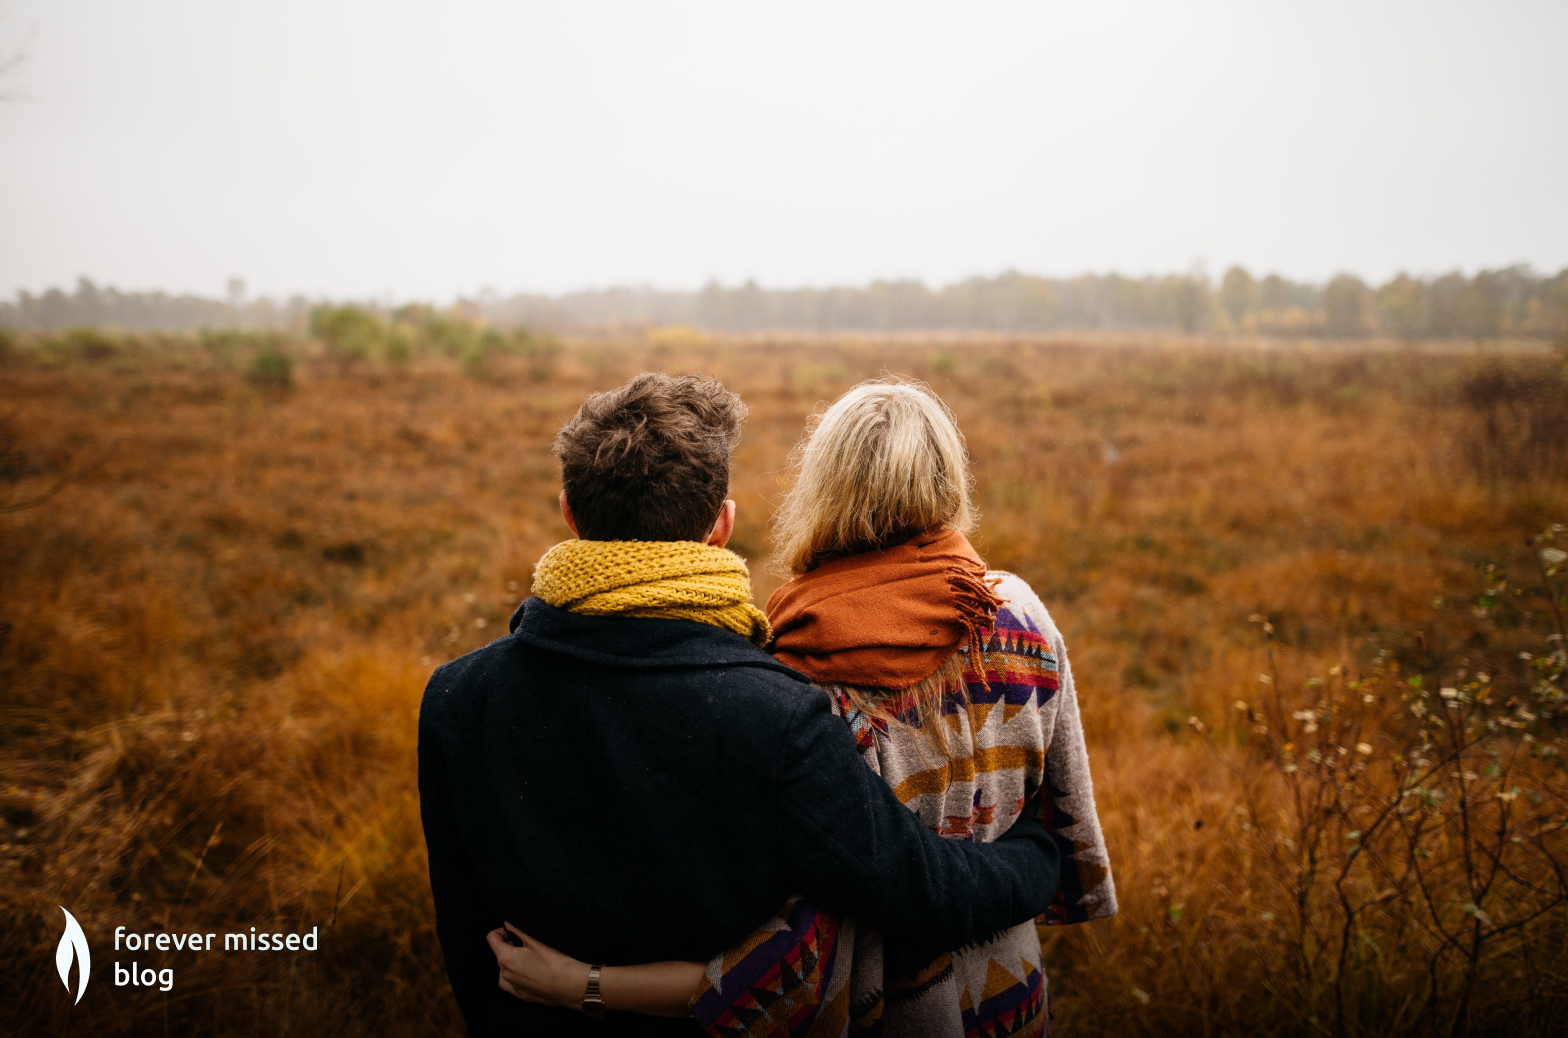 Grief Support Tips for Helping Someone Who's Grieving